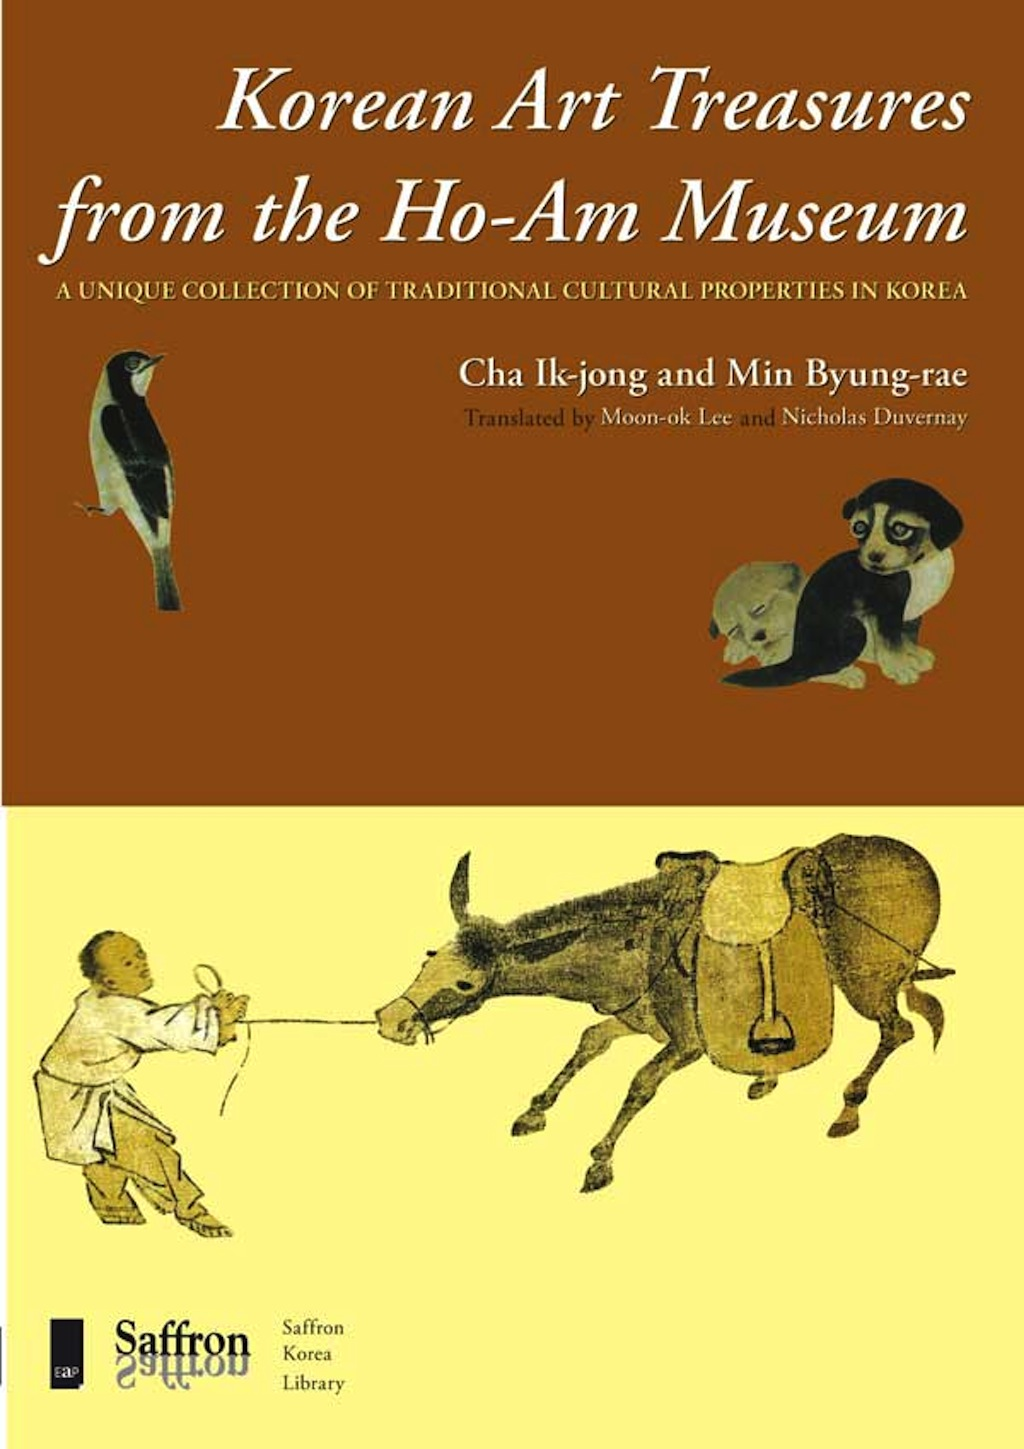 Korean art treasures from the Ho-Am Museum Product no.: 9781872843971/17480477